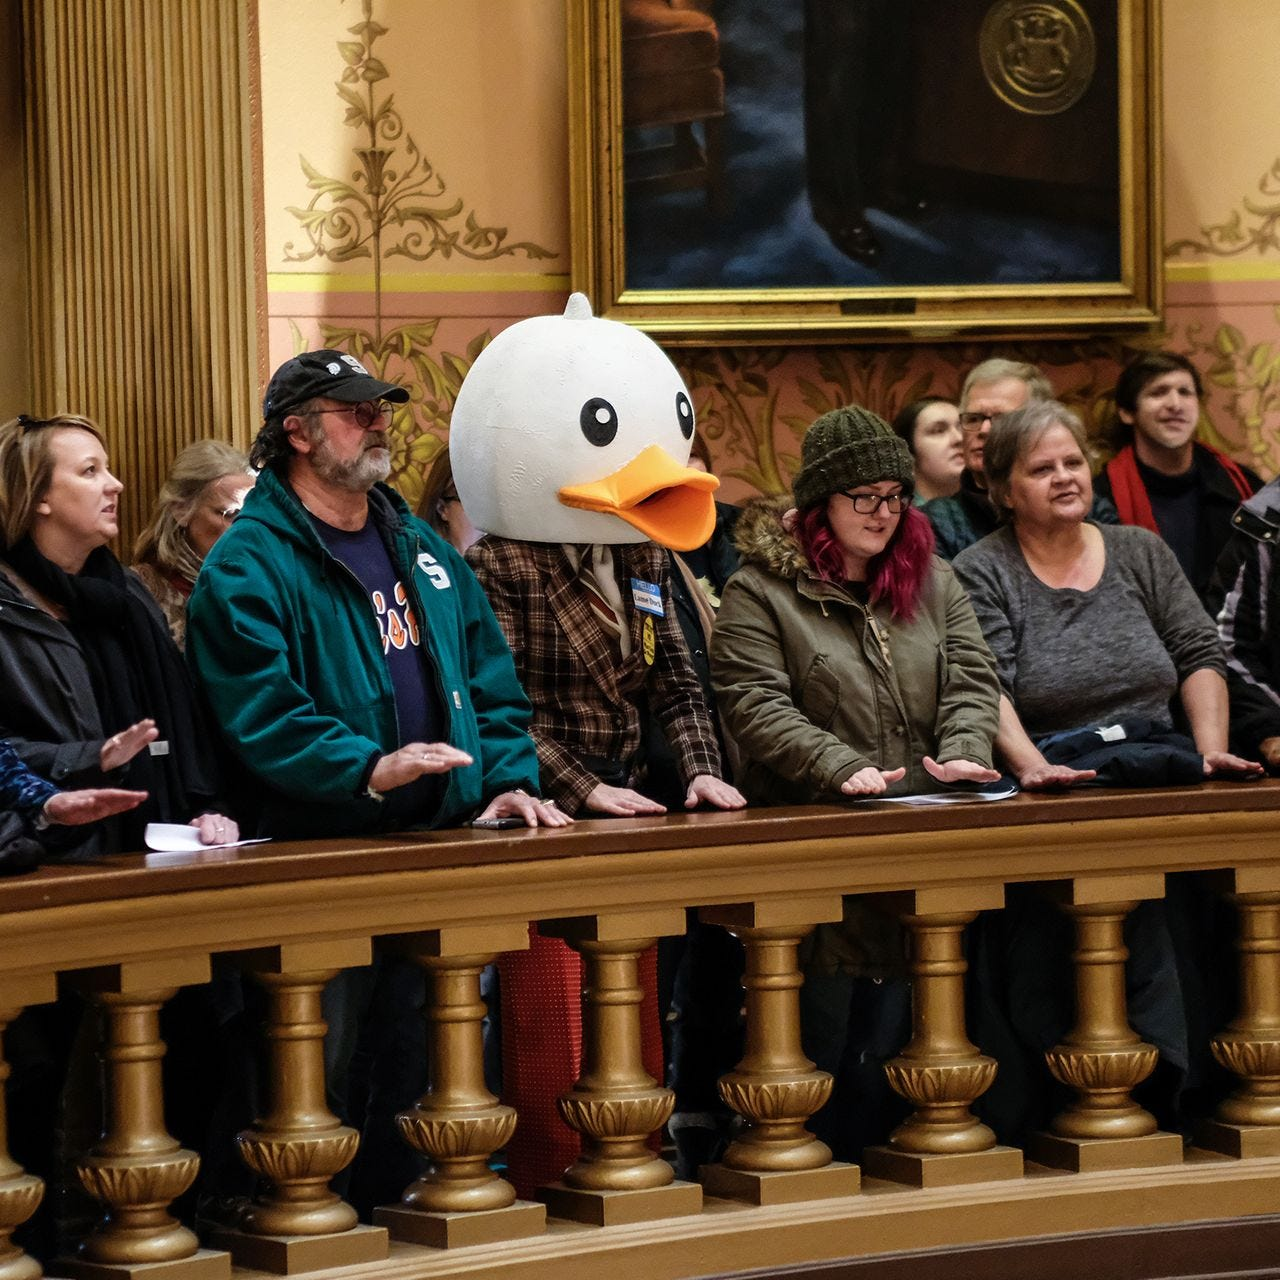 Next for Michigan's lame-duck legislature: A lawmaker spending spree?